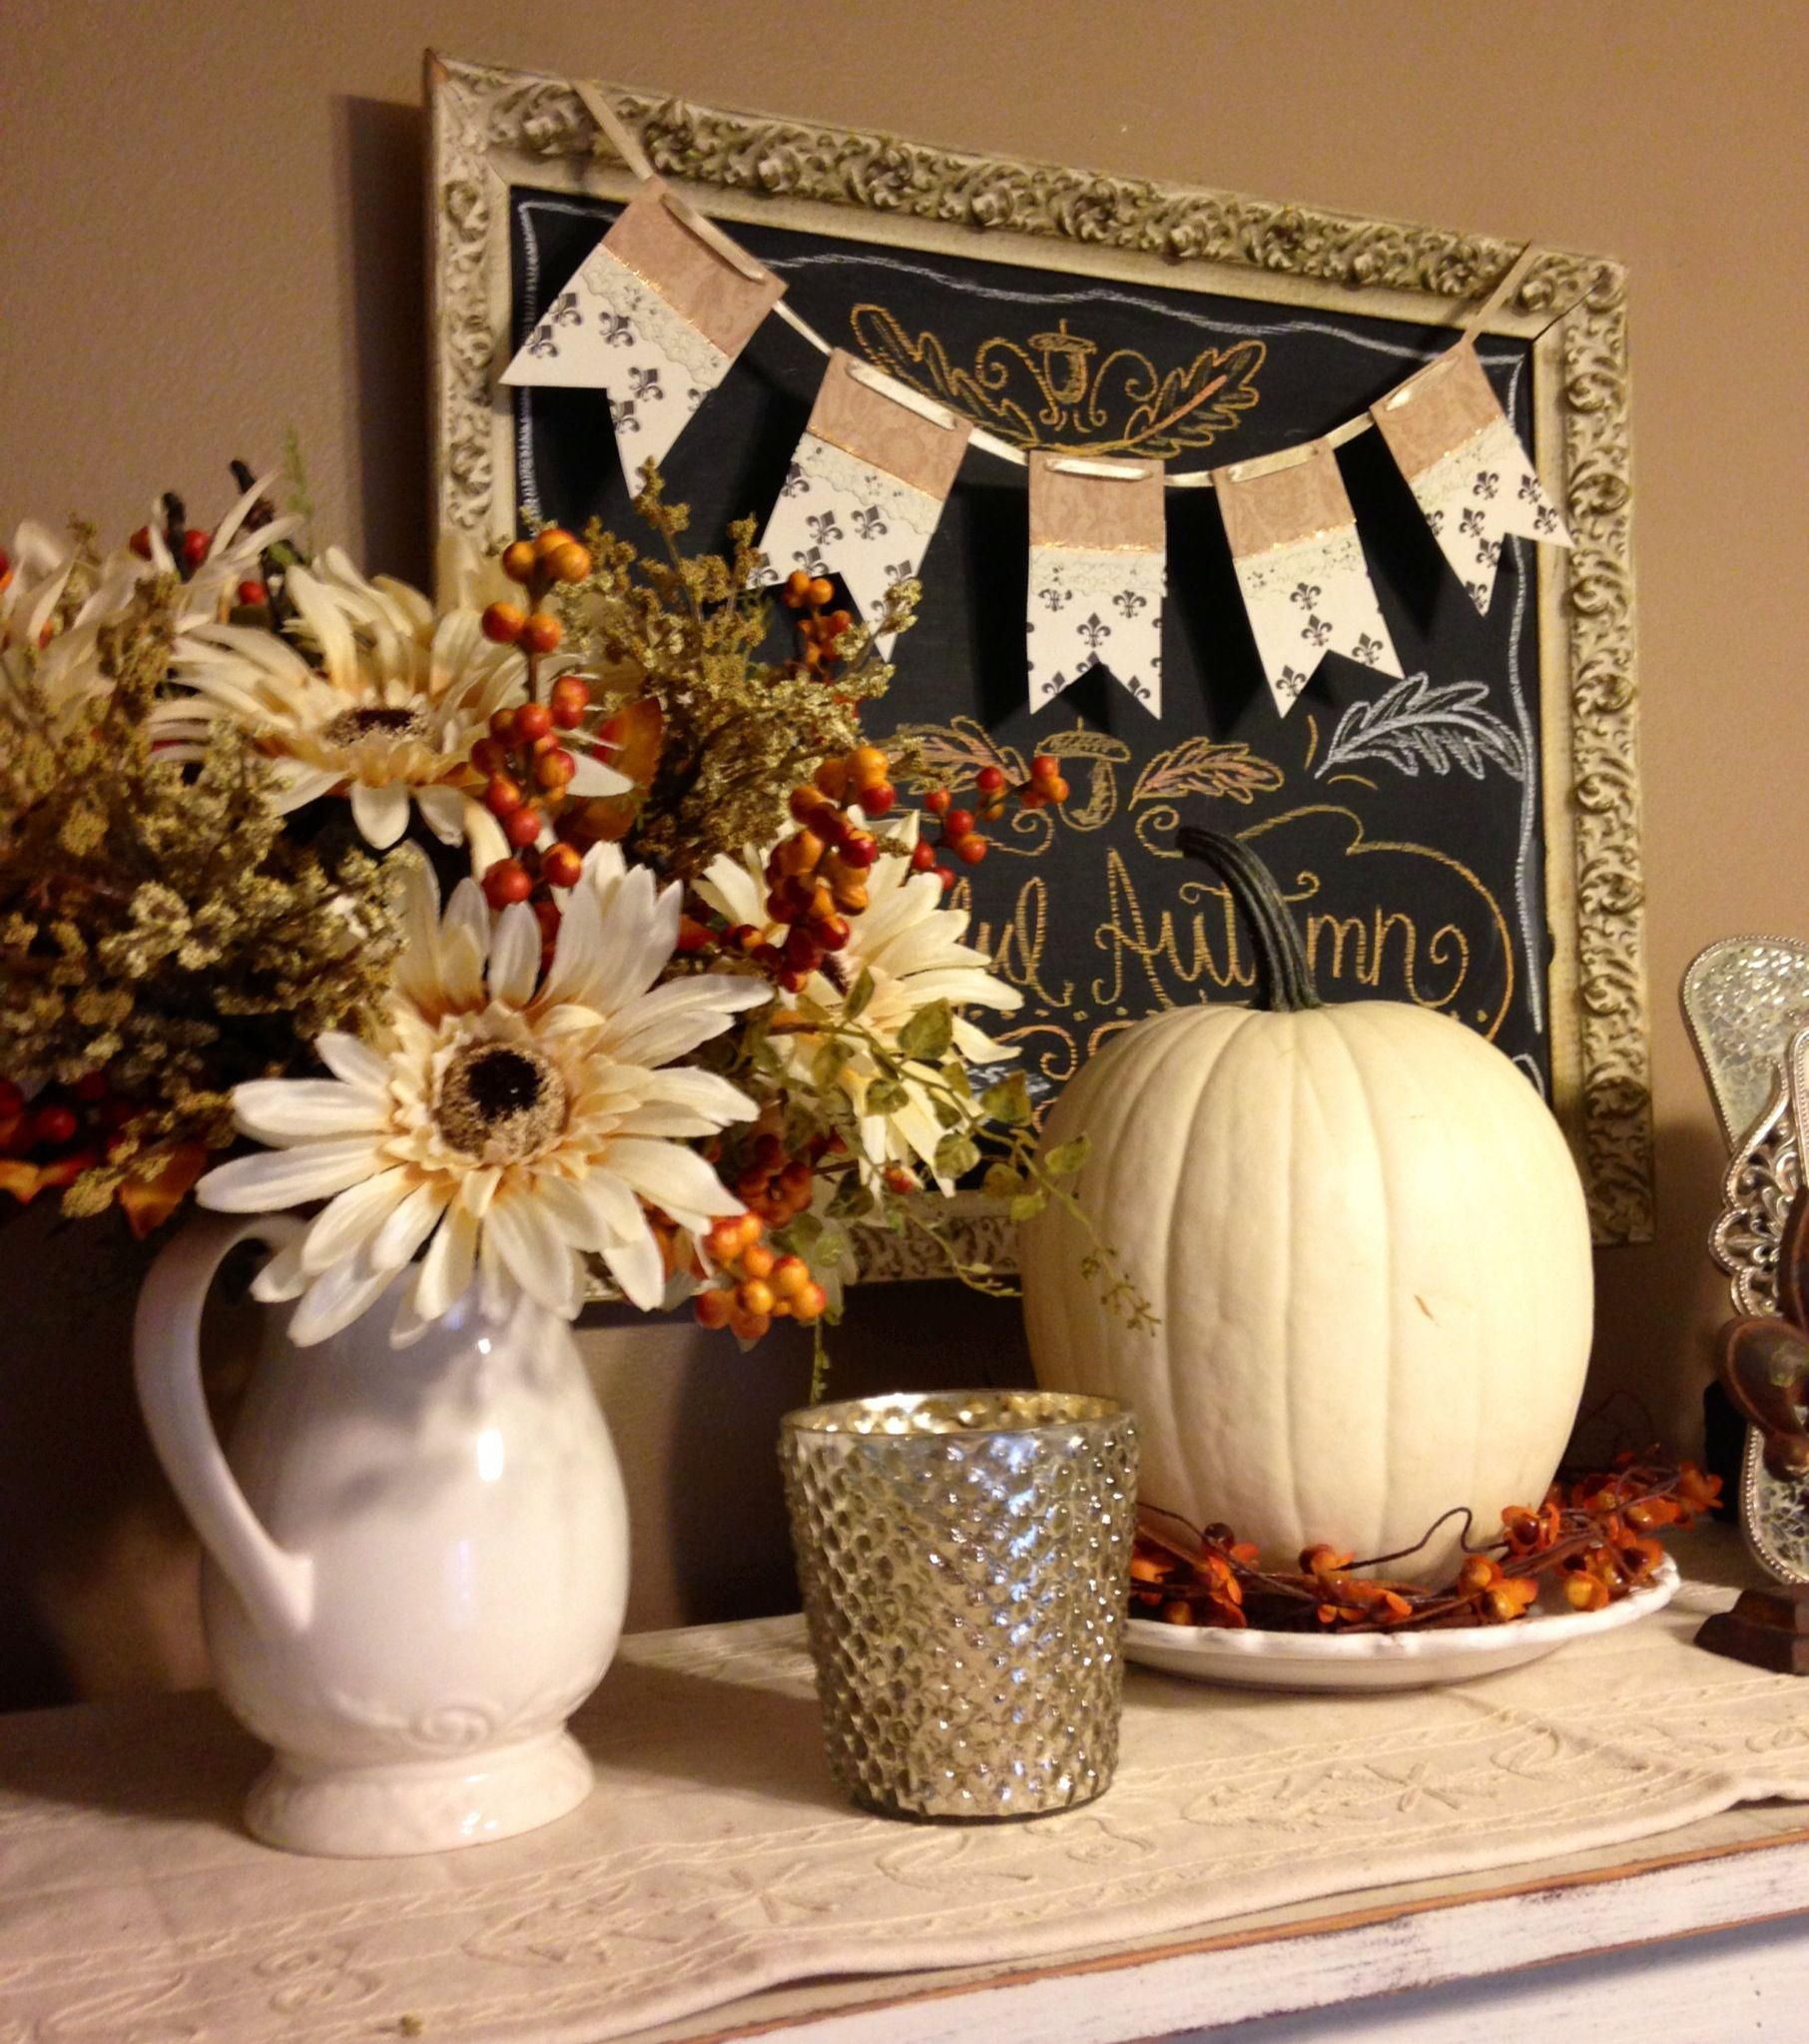 Fall Decorating Ideas On Pinterest For Your Hallway: Best 25+ Vintage Fall Decor Ideas On Pinterest